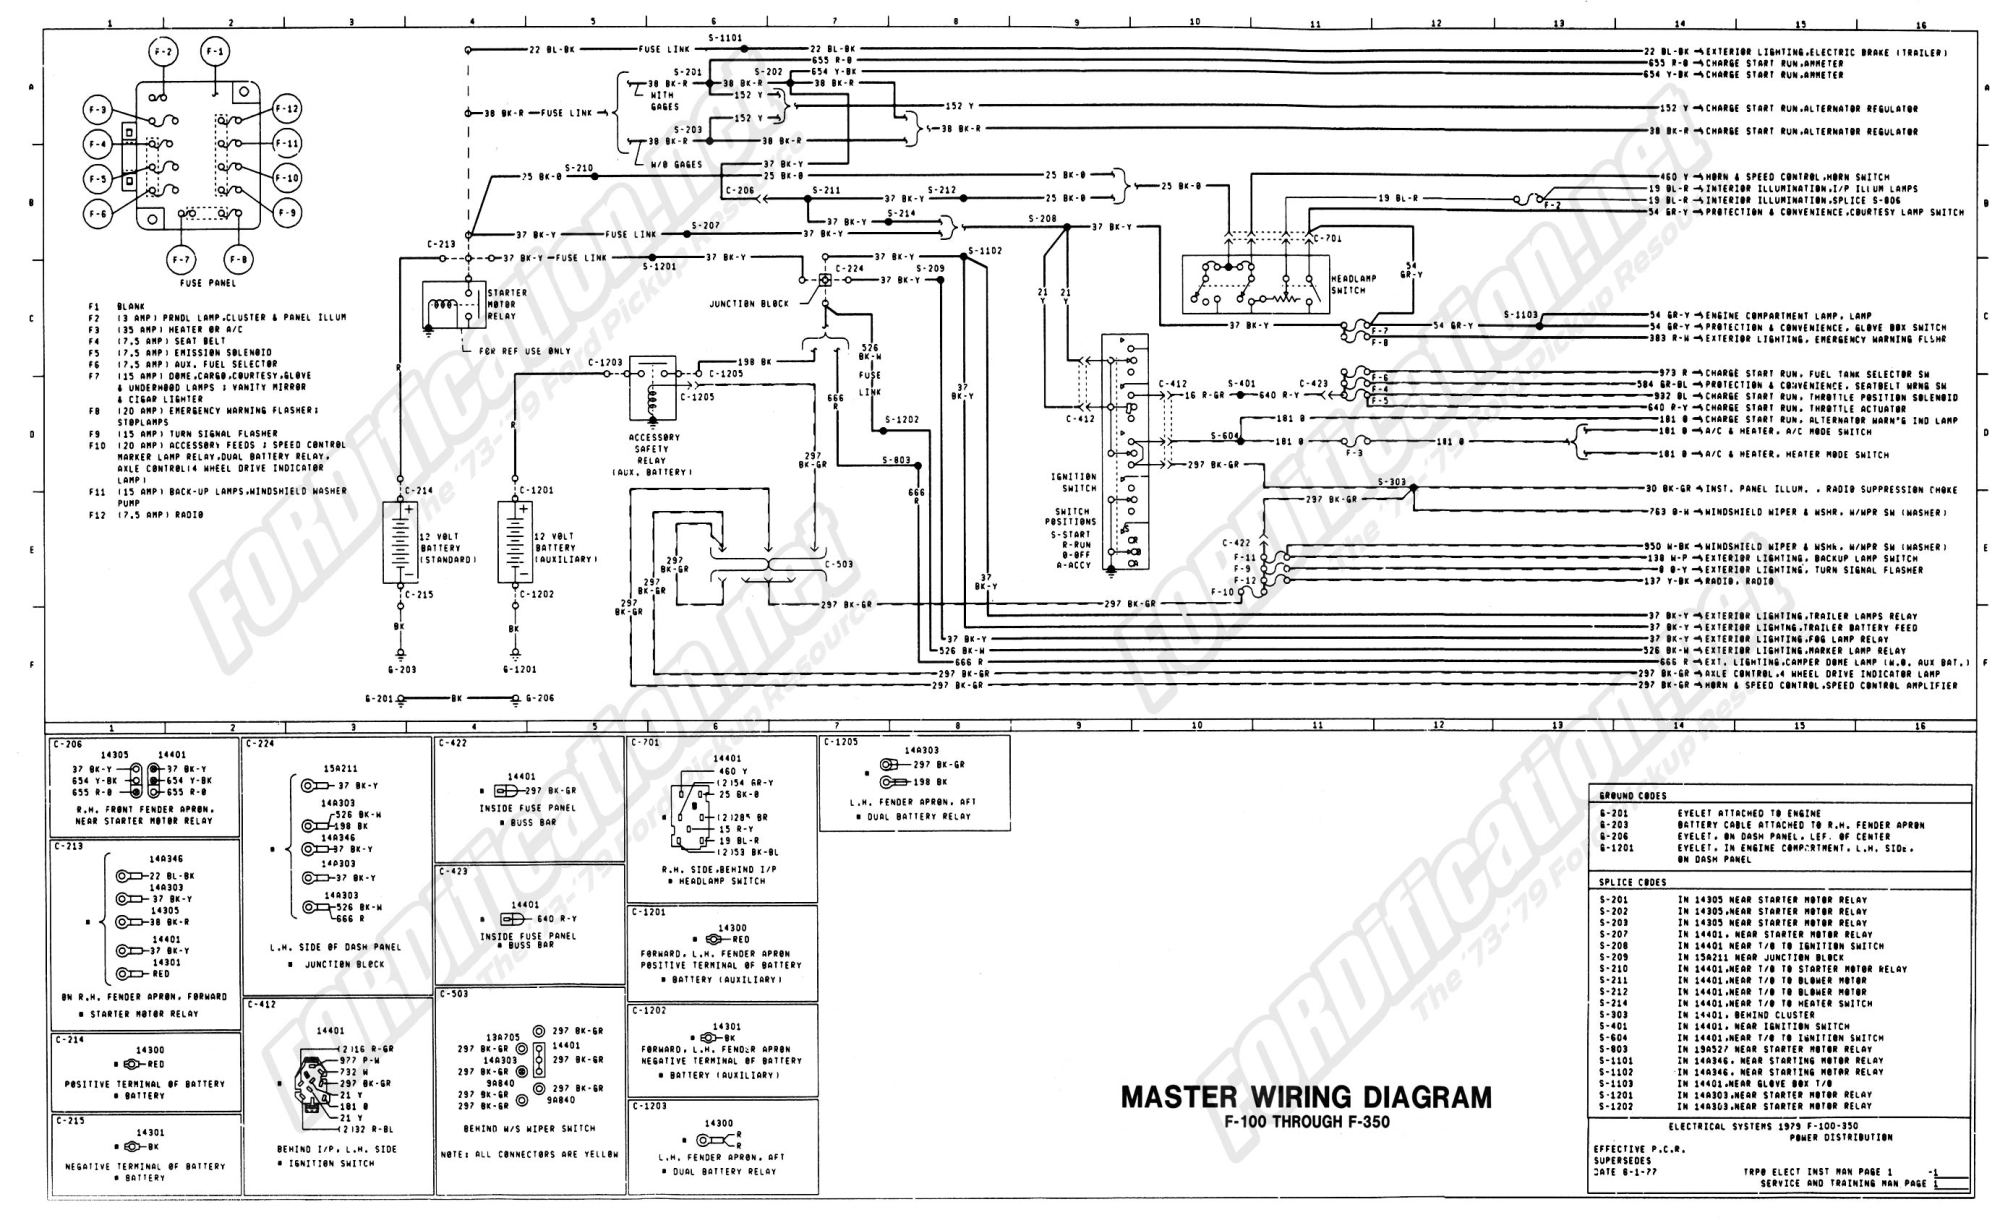 hight resolution of 2004 ford truck wiring diagrams wiring diagram detailed2004 ford e150 van fuse box diagram wiring library